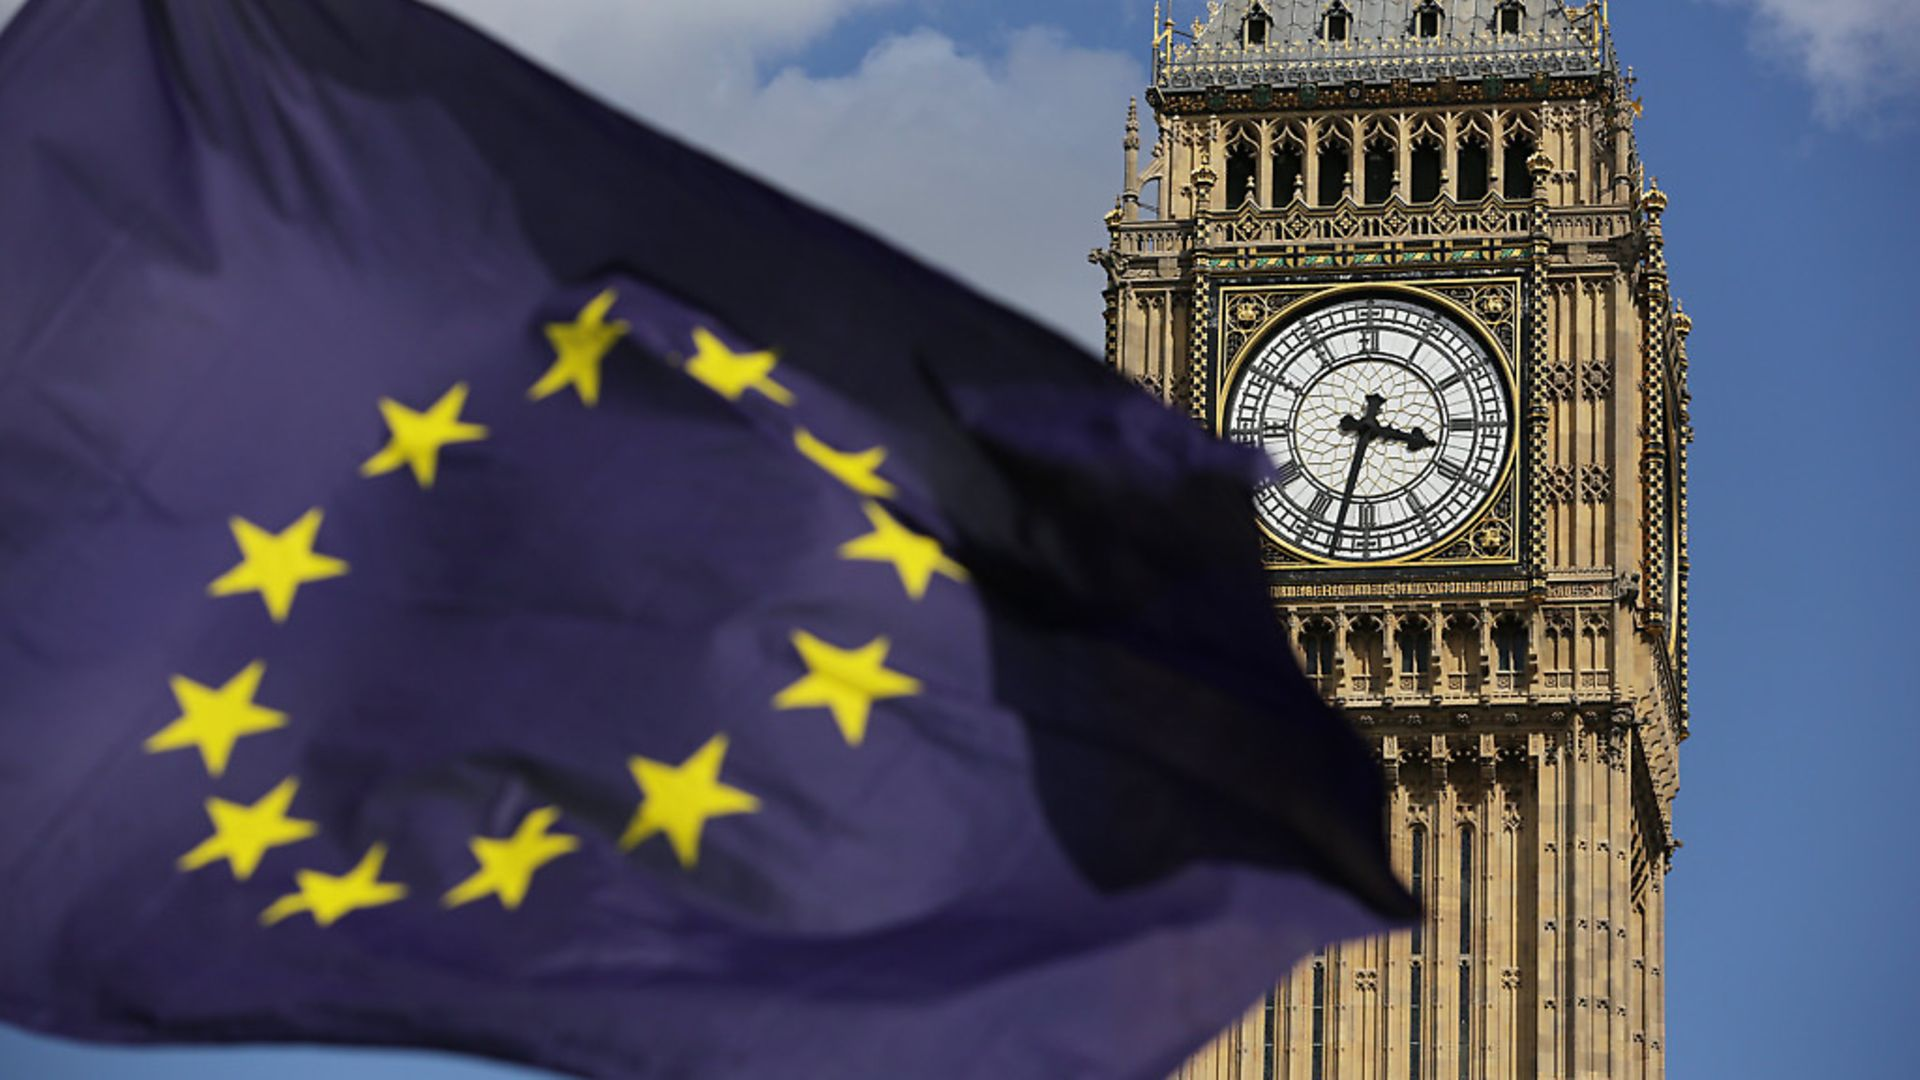 A European Union flag in front of Big Ben at an anti-Brexit event. Photograph: Daniel Leal-Olivas/PA. - Credit: PA